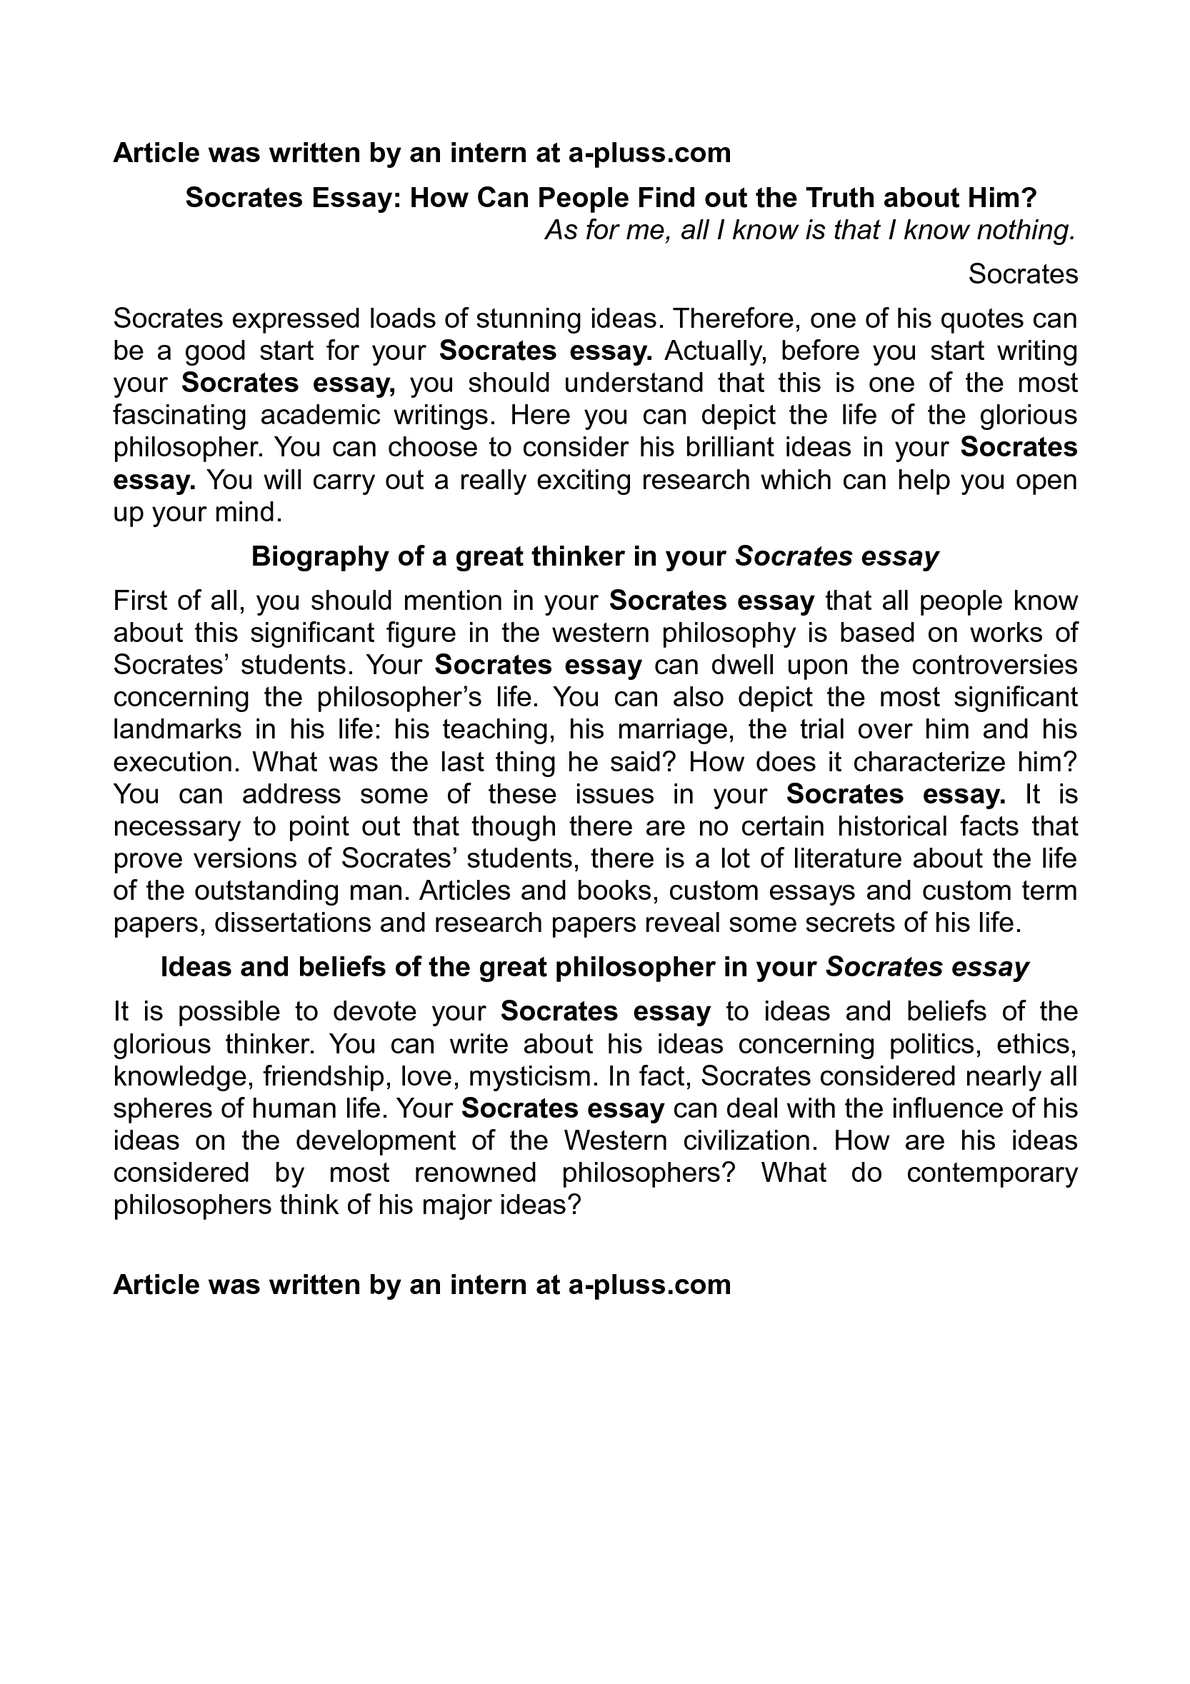 calam atilde copy o socrates essay how can people out the truth about him